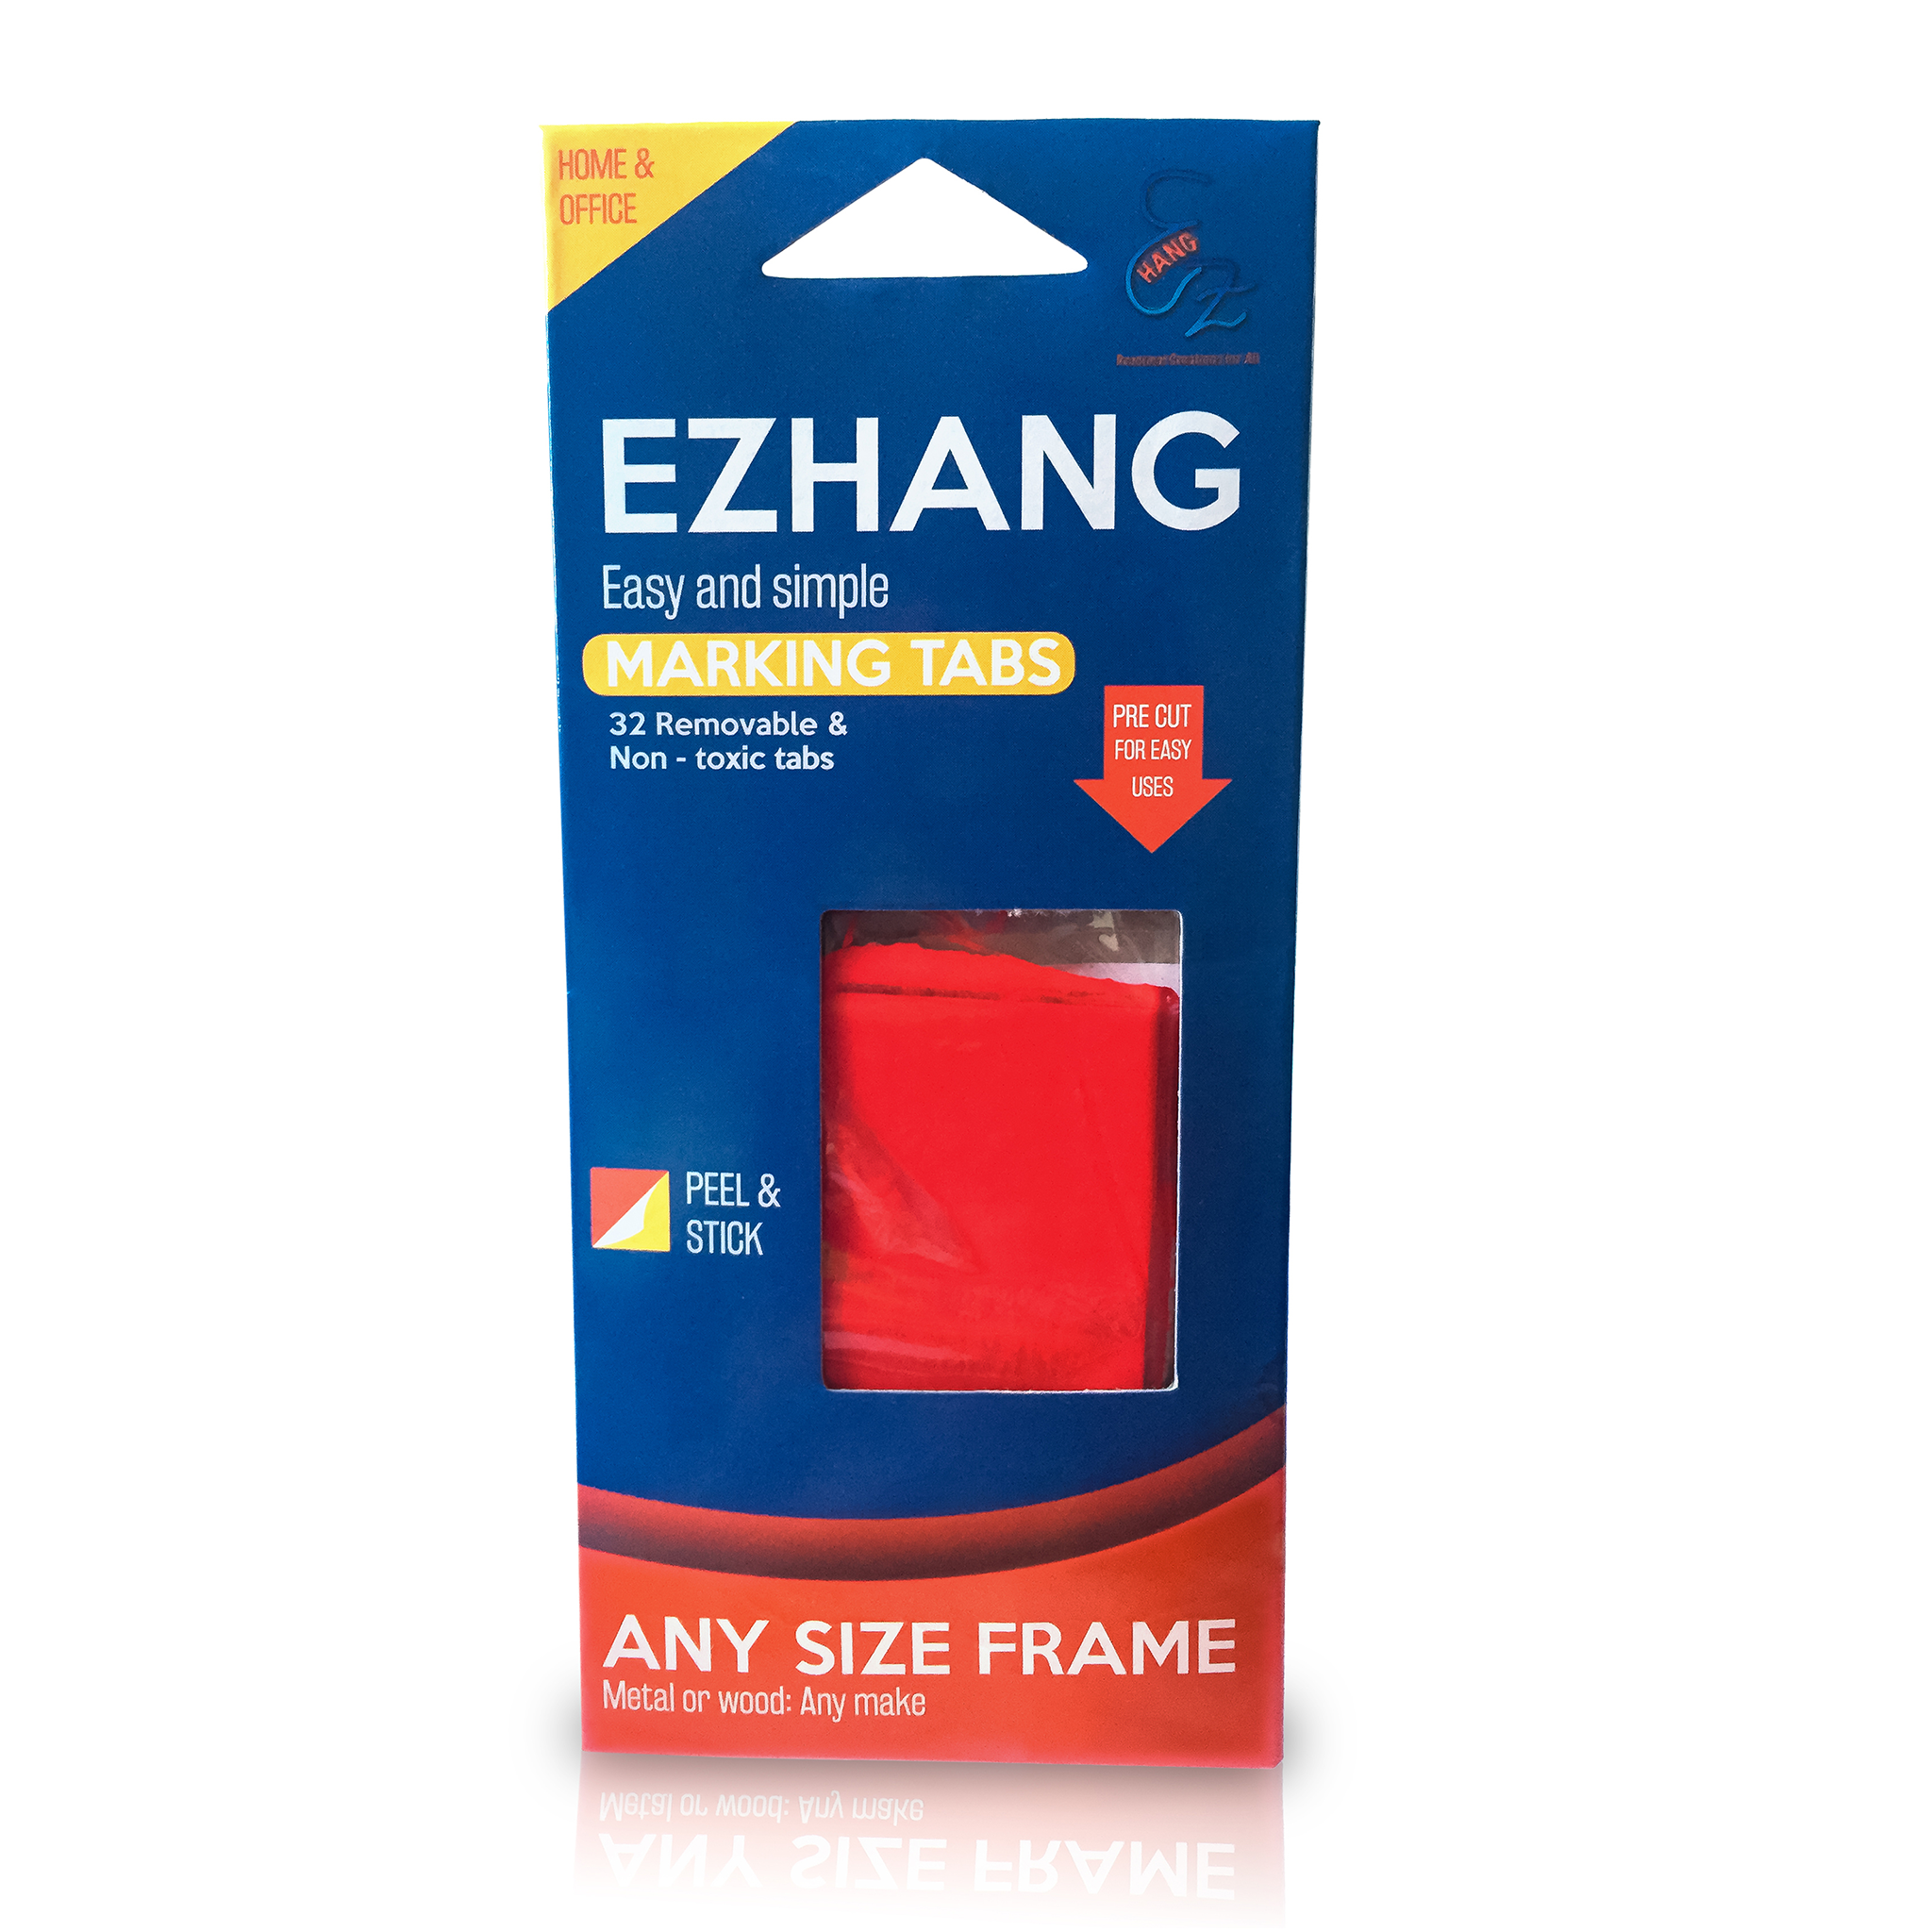 EZ Hang Marking Tabs